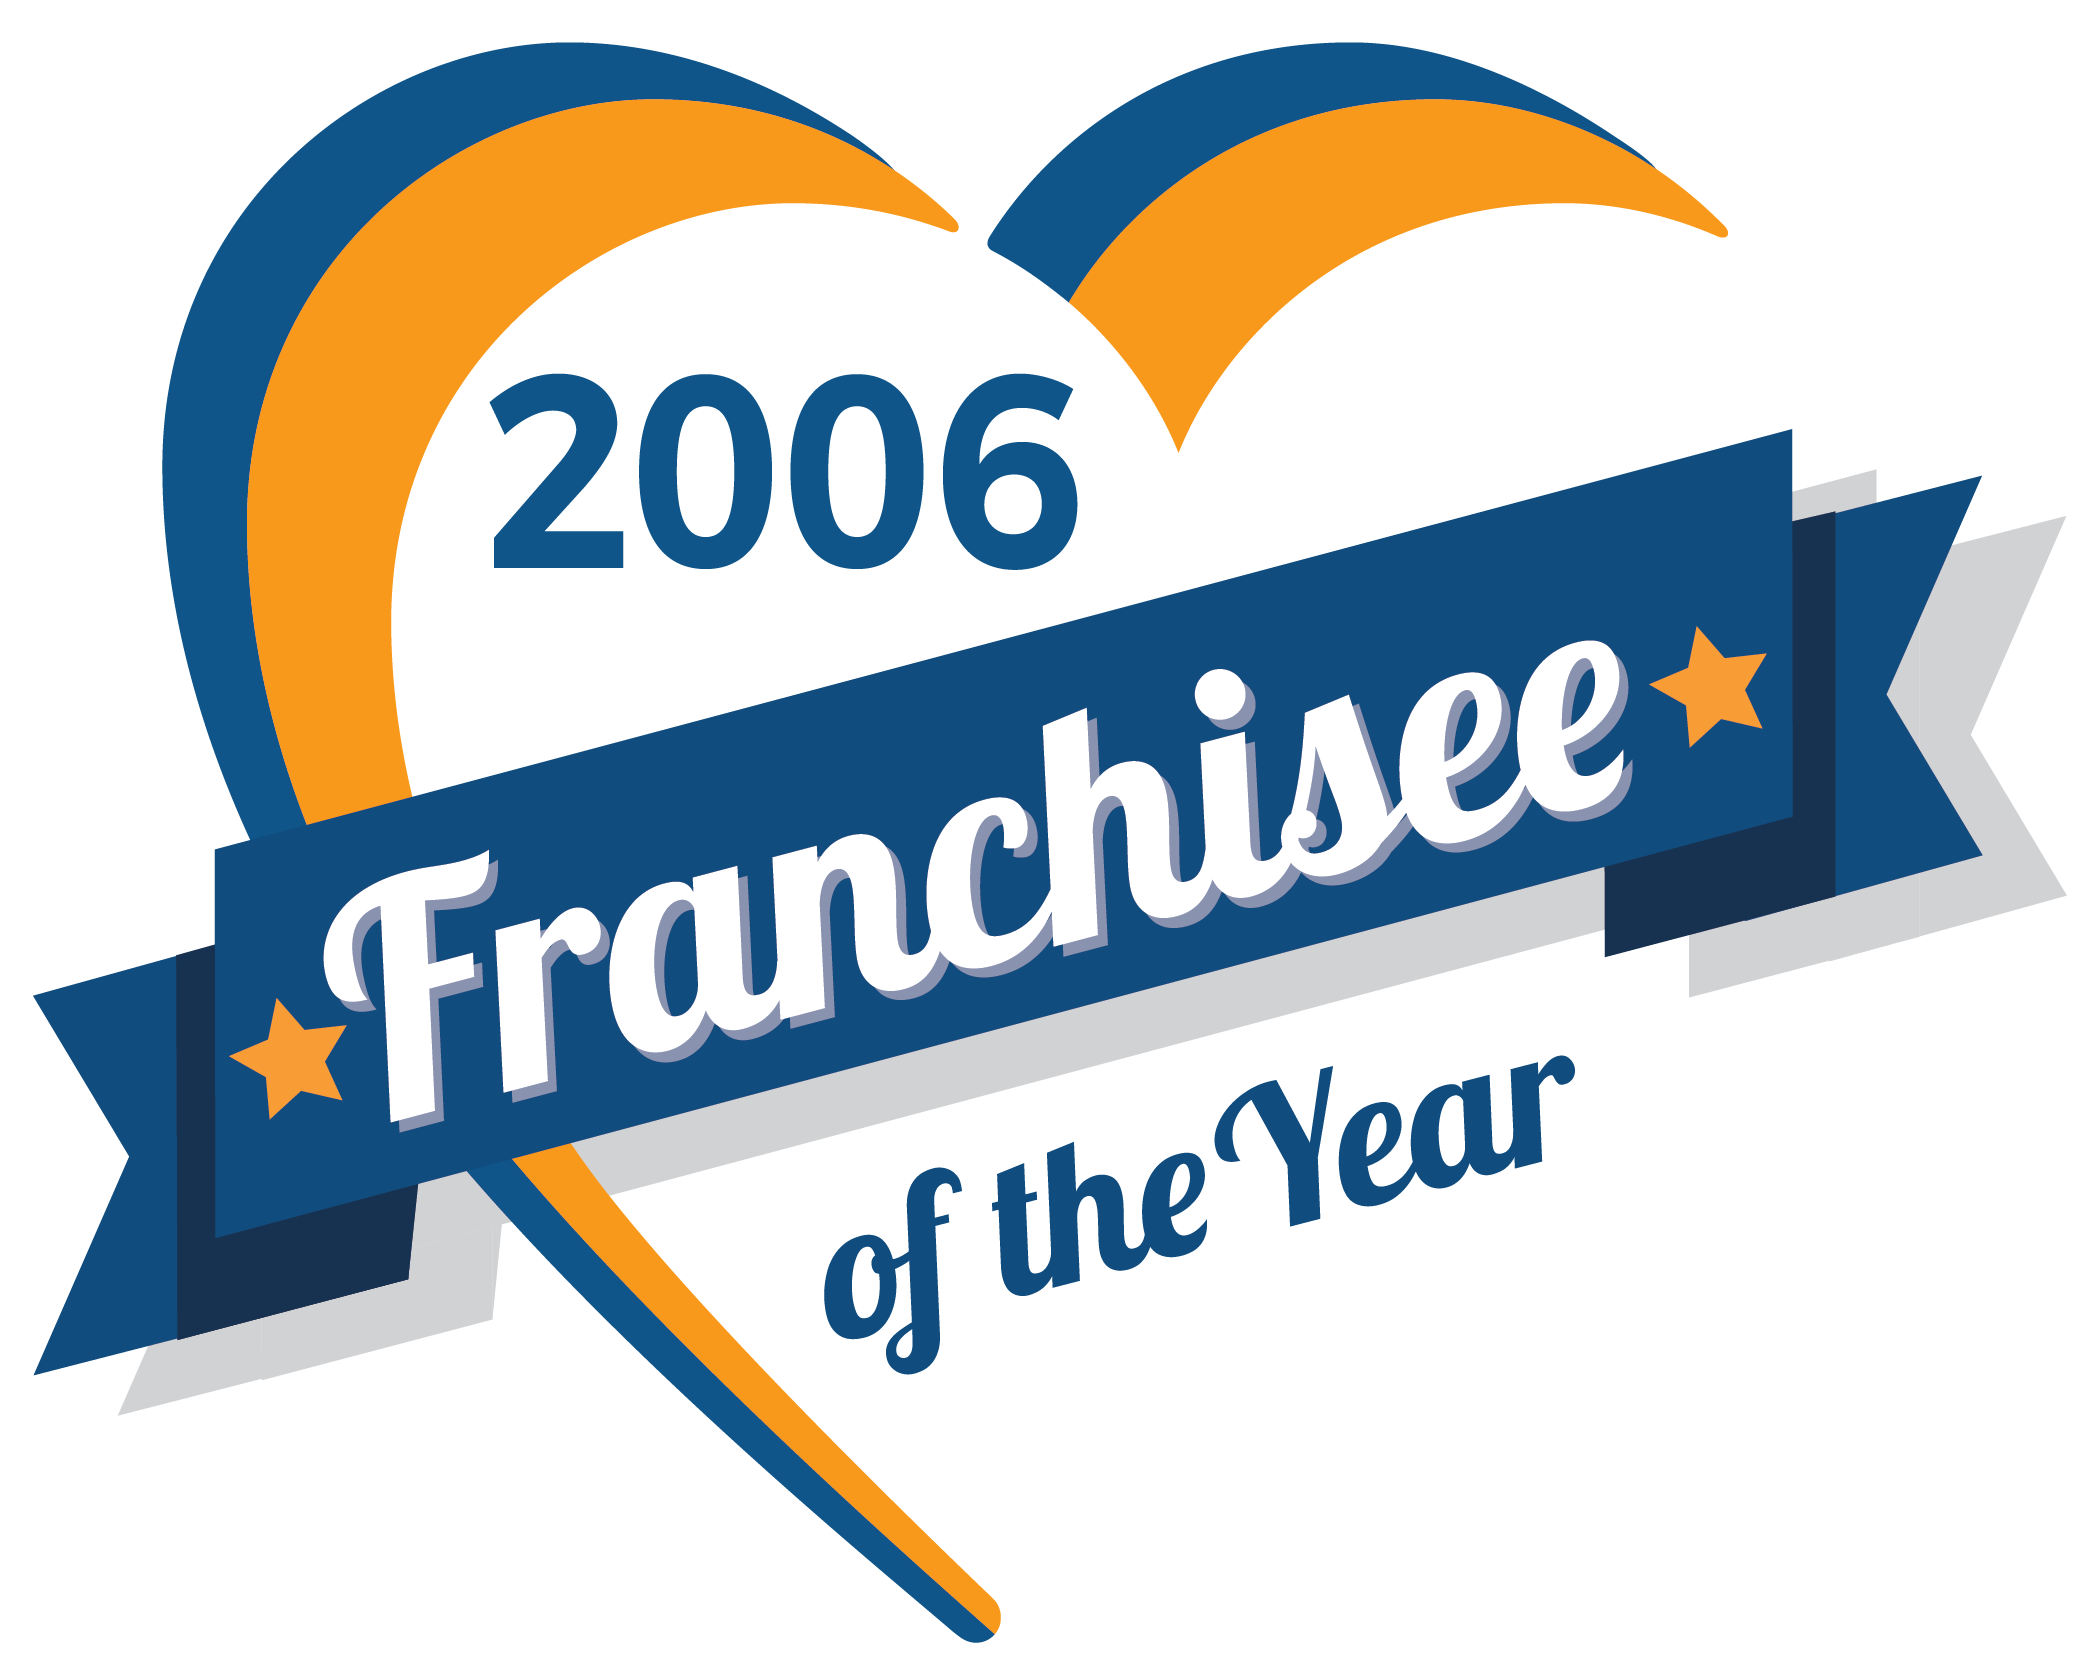 2006 Franchise of the Year Award